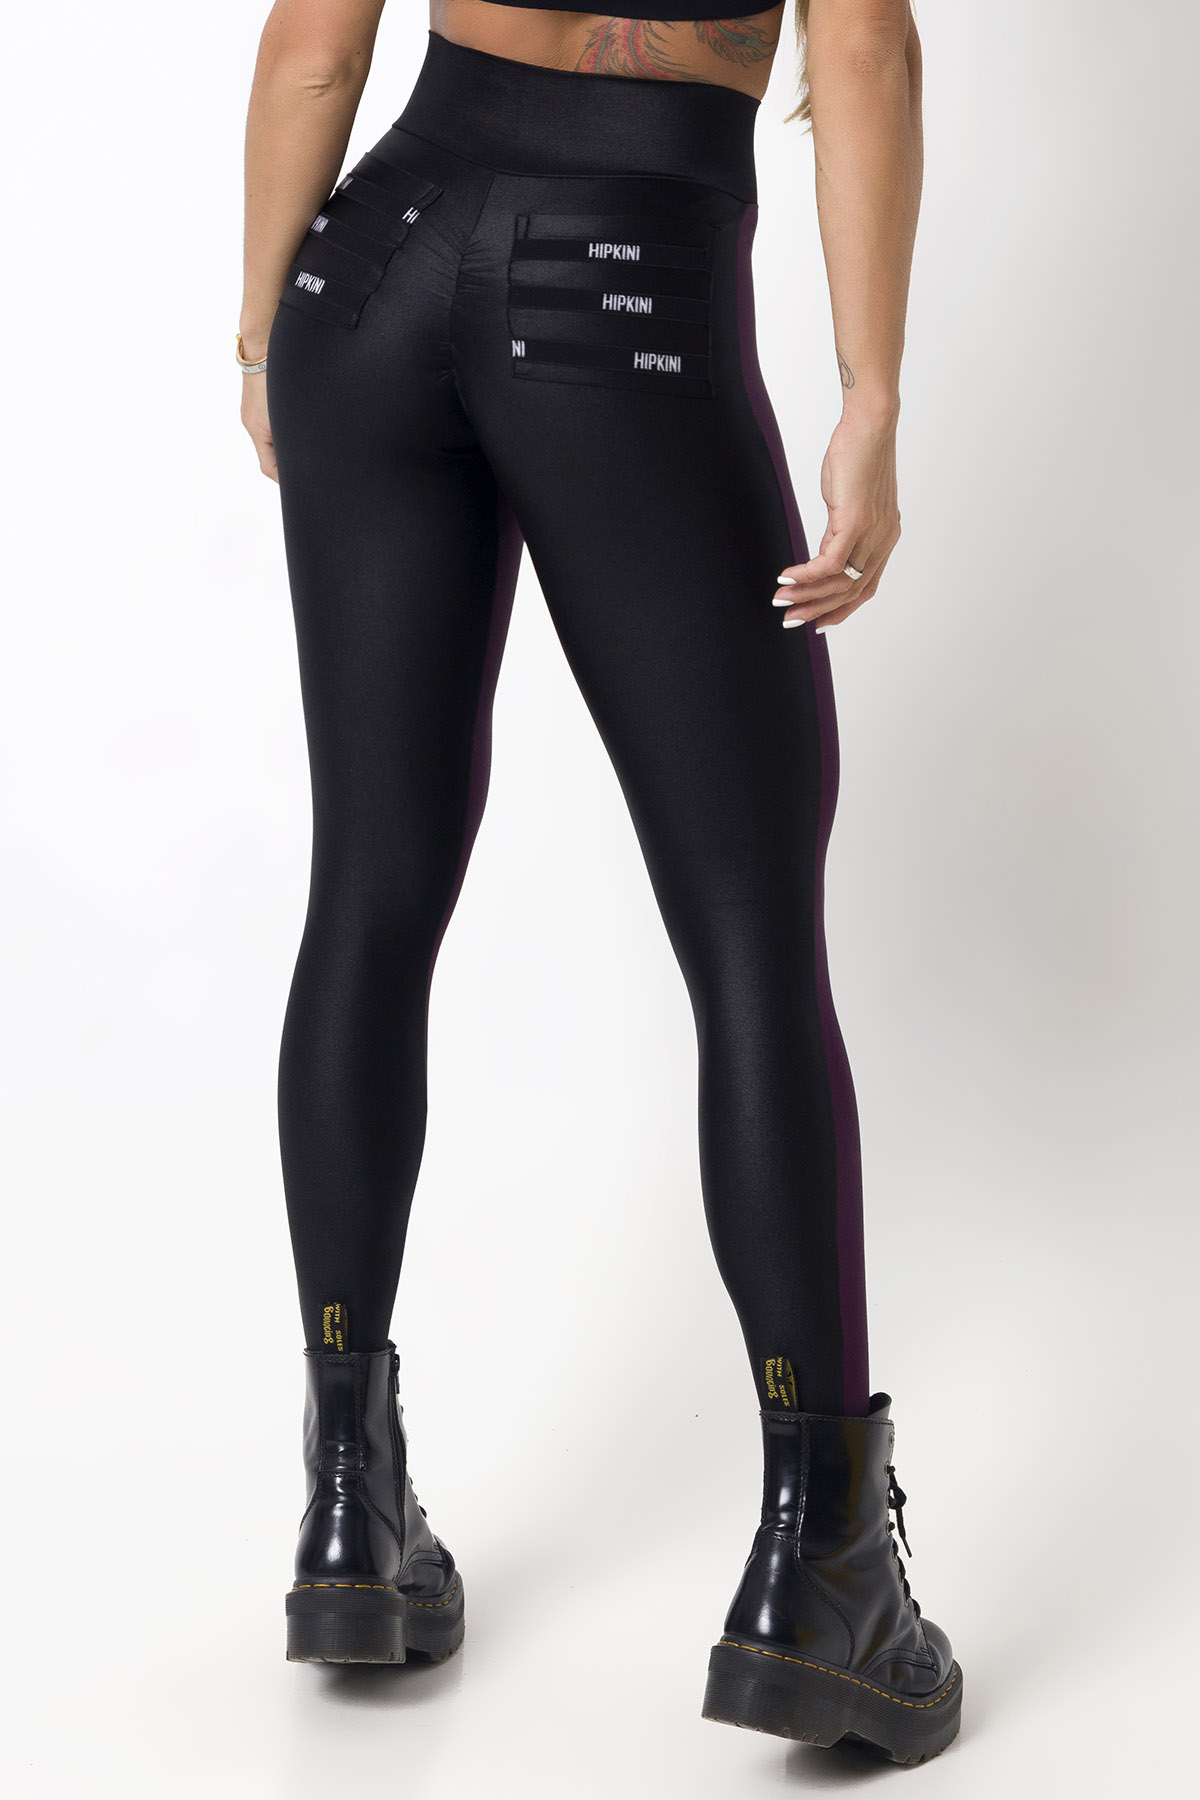 LEGGING WAVE FITNESS ROXA BRILHANTE HIPKINI